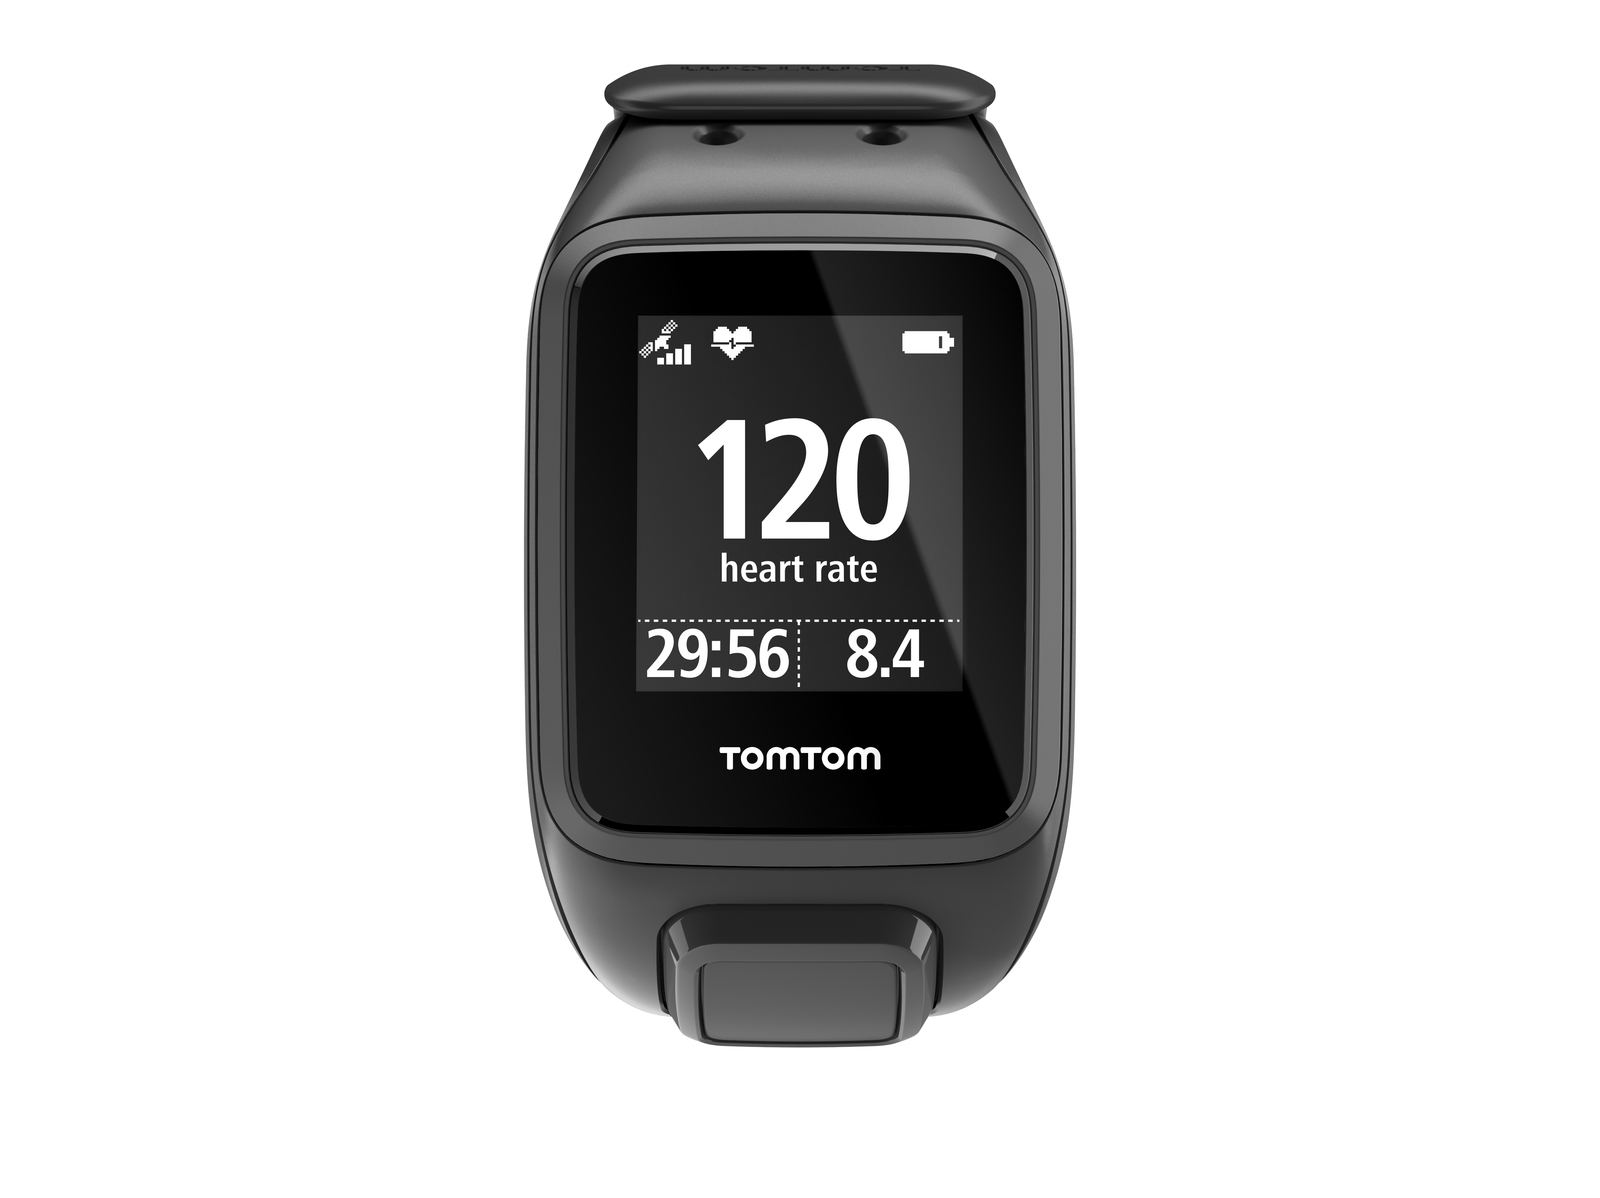 tomtom spark gps watch manual